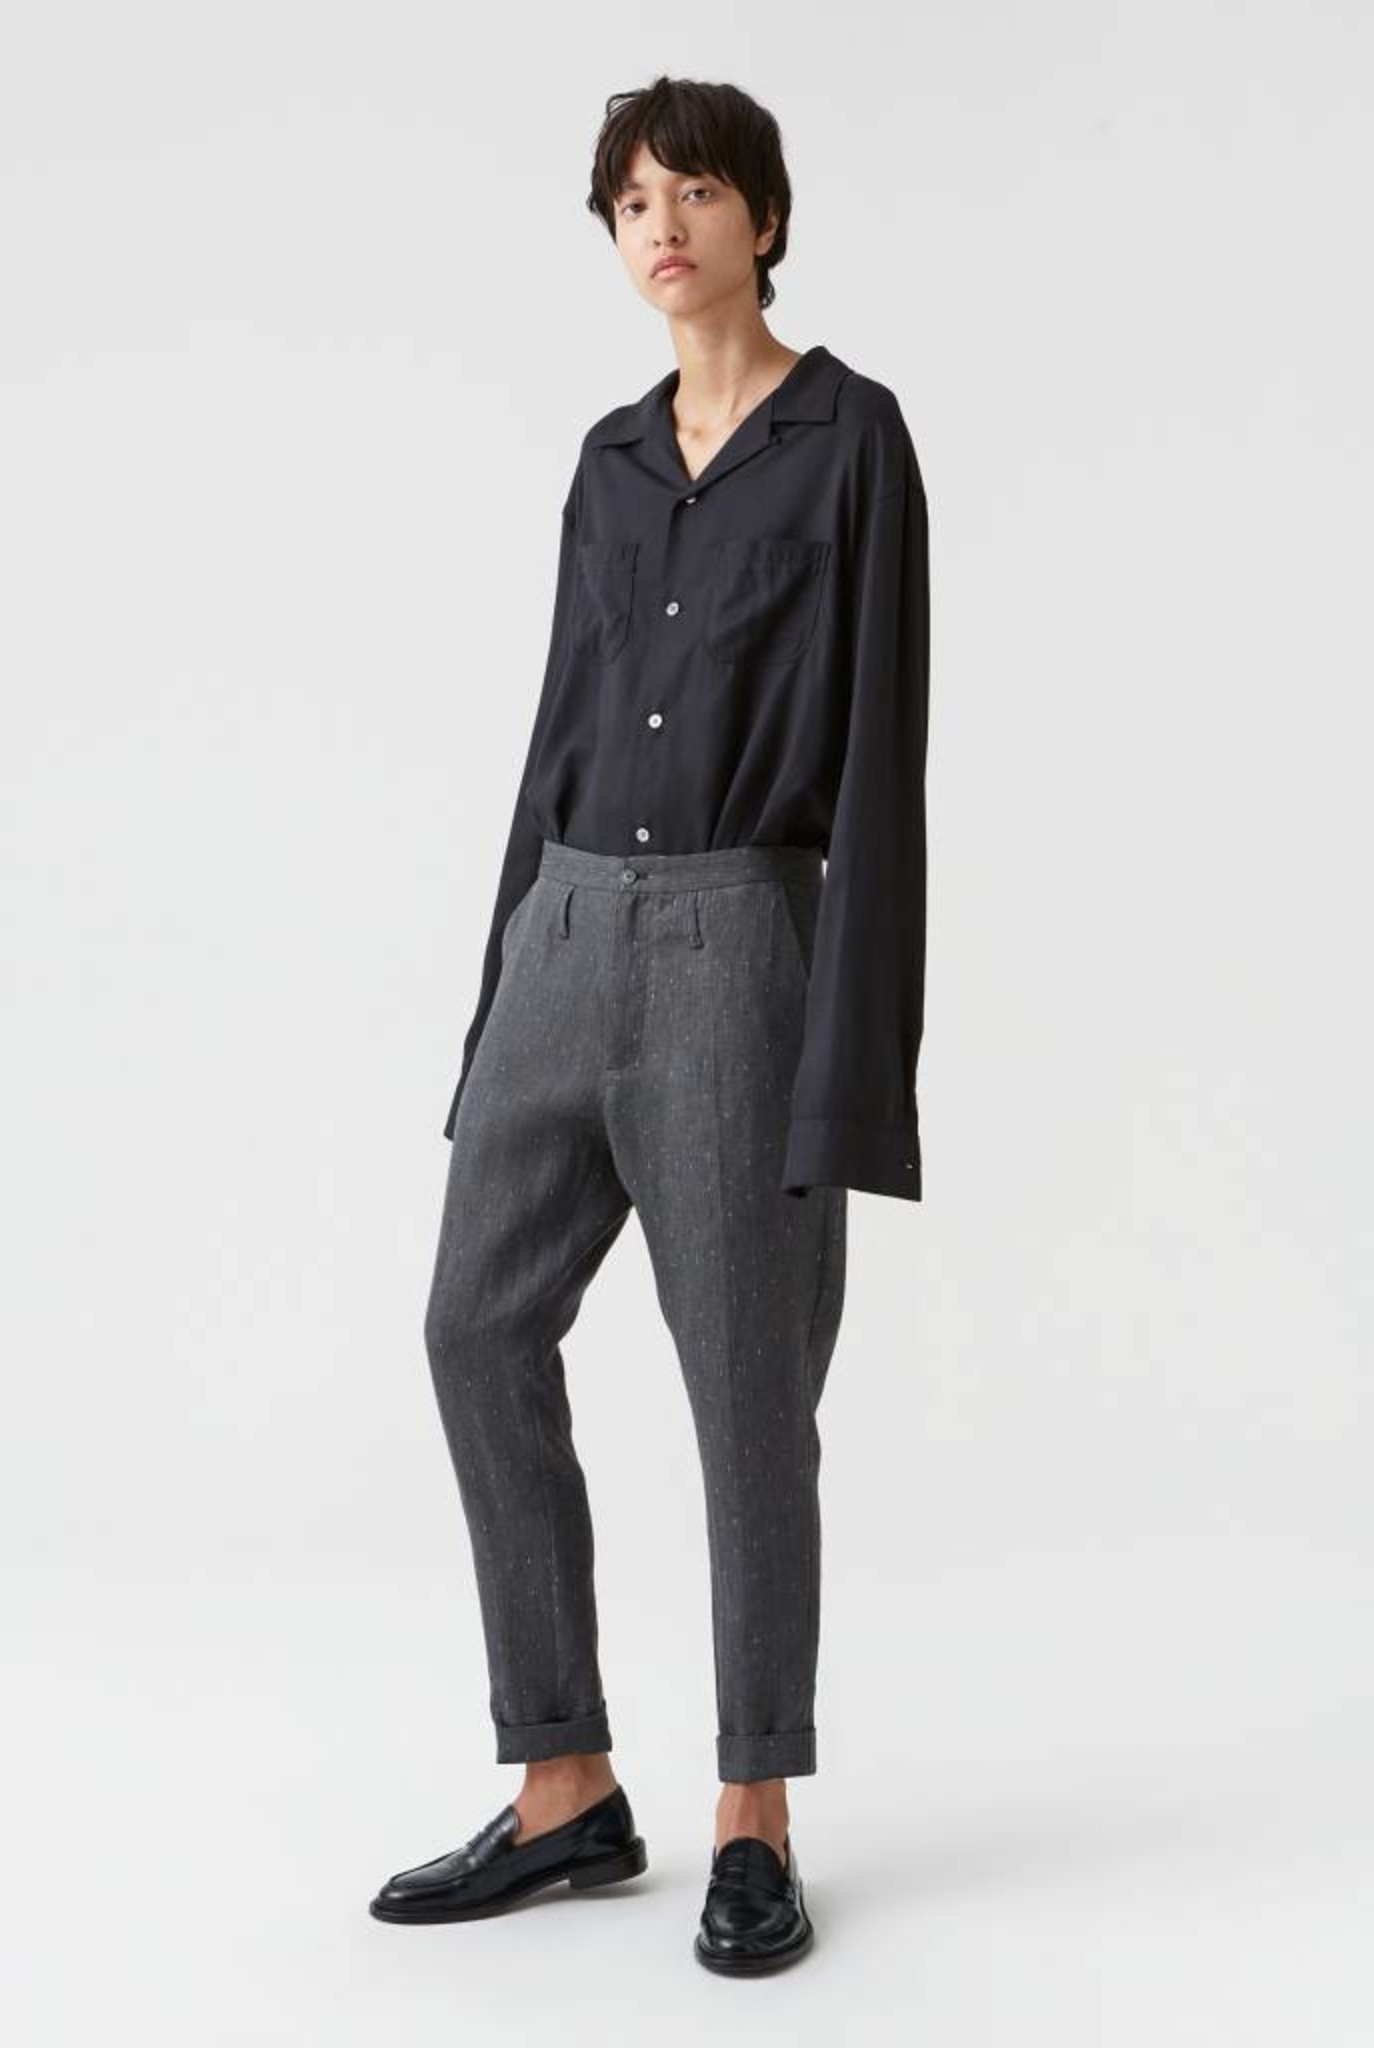 Law trouser black stripe